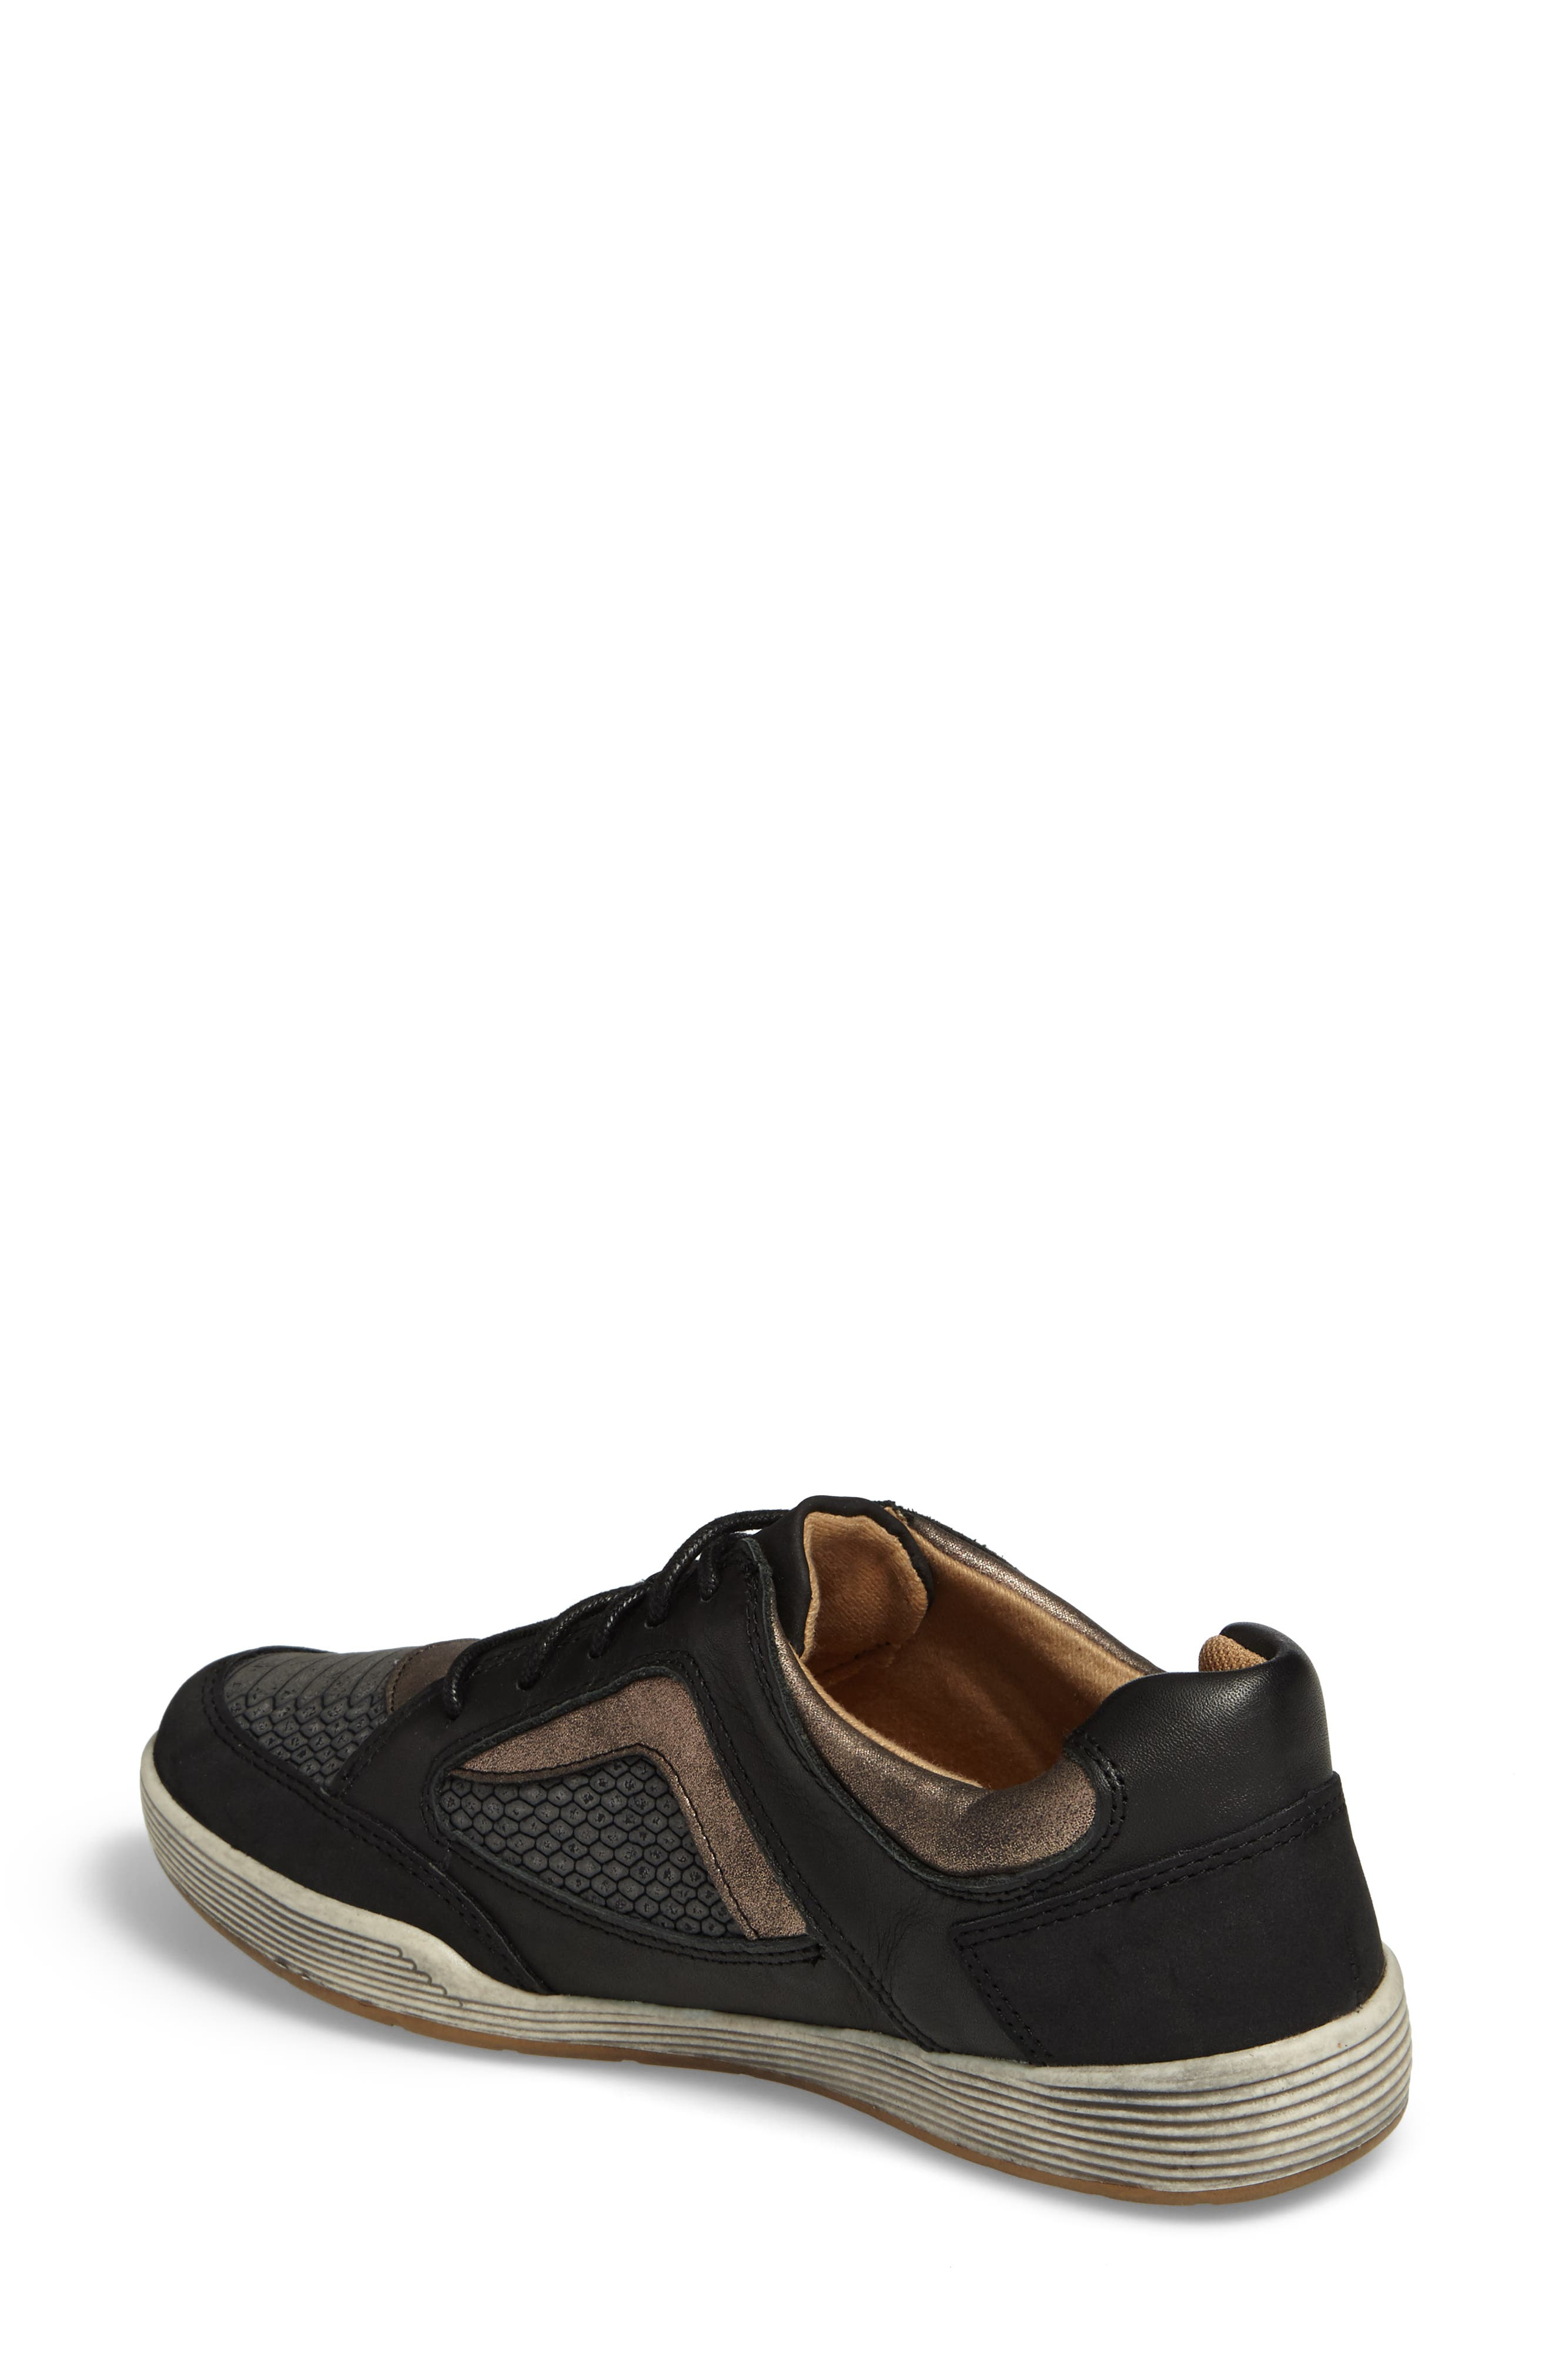 Lemont Snake Embossed Sneaker,                             Alternate thumbnail 2, color,                             BLACK SNAKE PRINT LEATHER